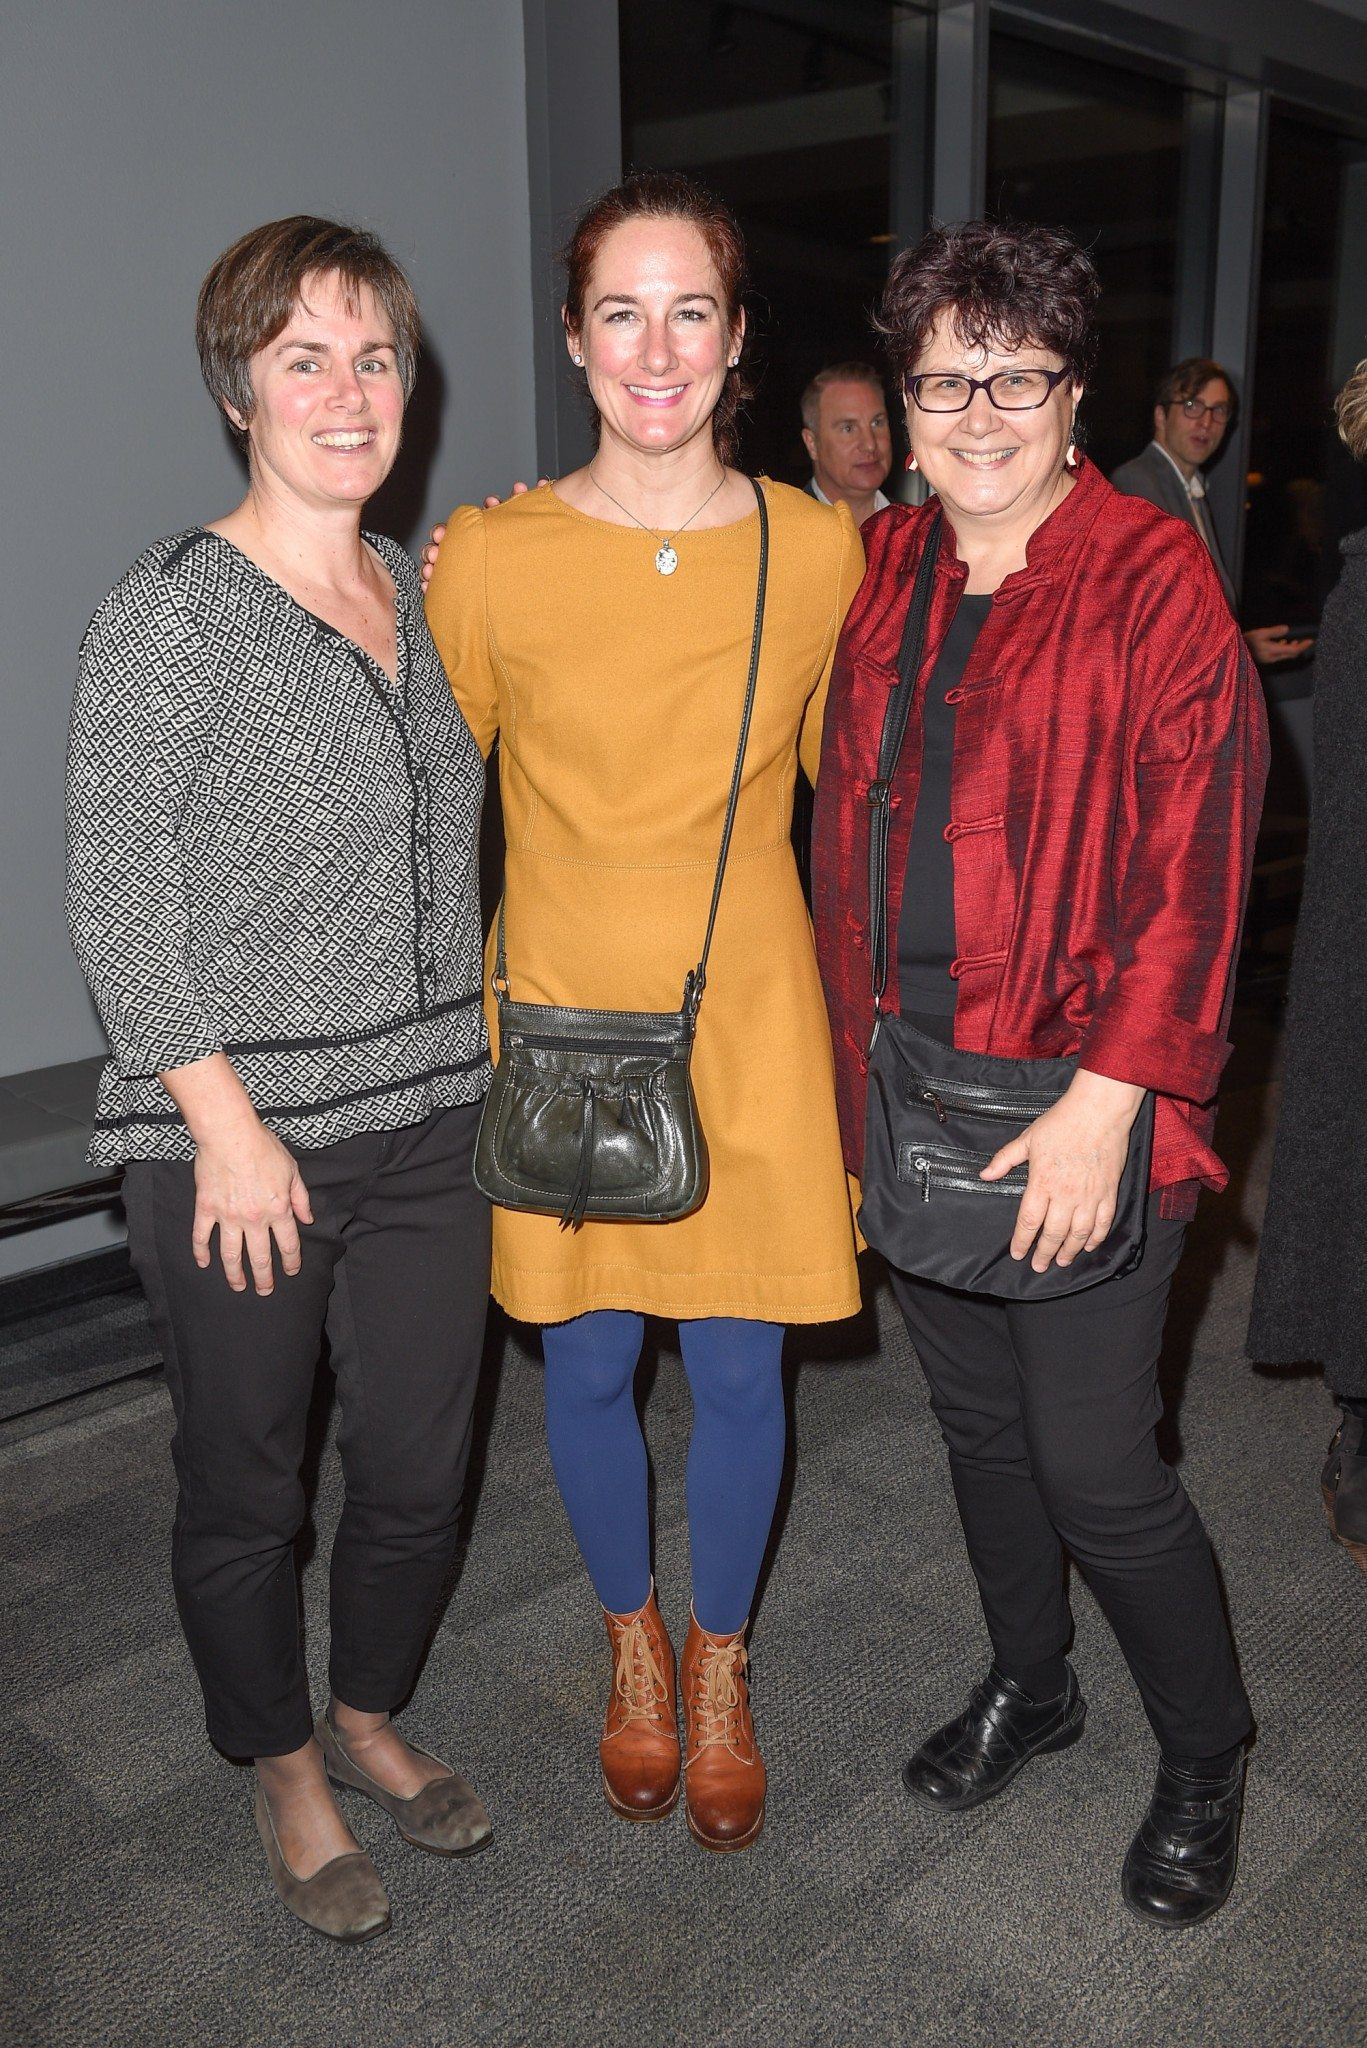 Alison Motluk, Christen Thomas, and Ann Jansen (Photo: George Pimentel Photography)